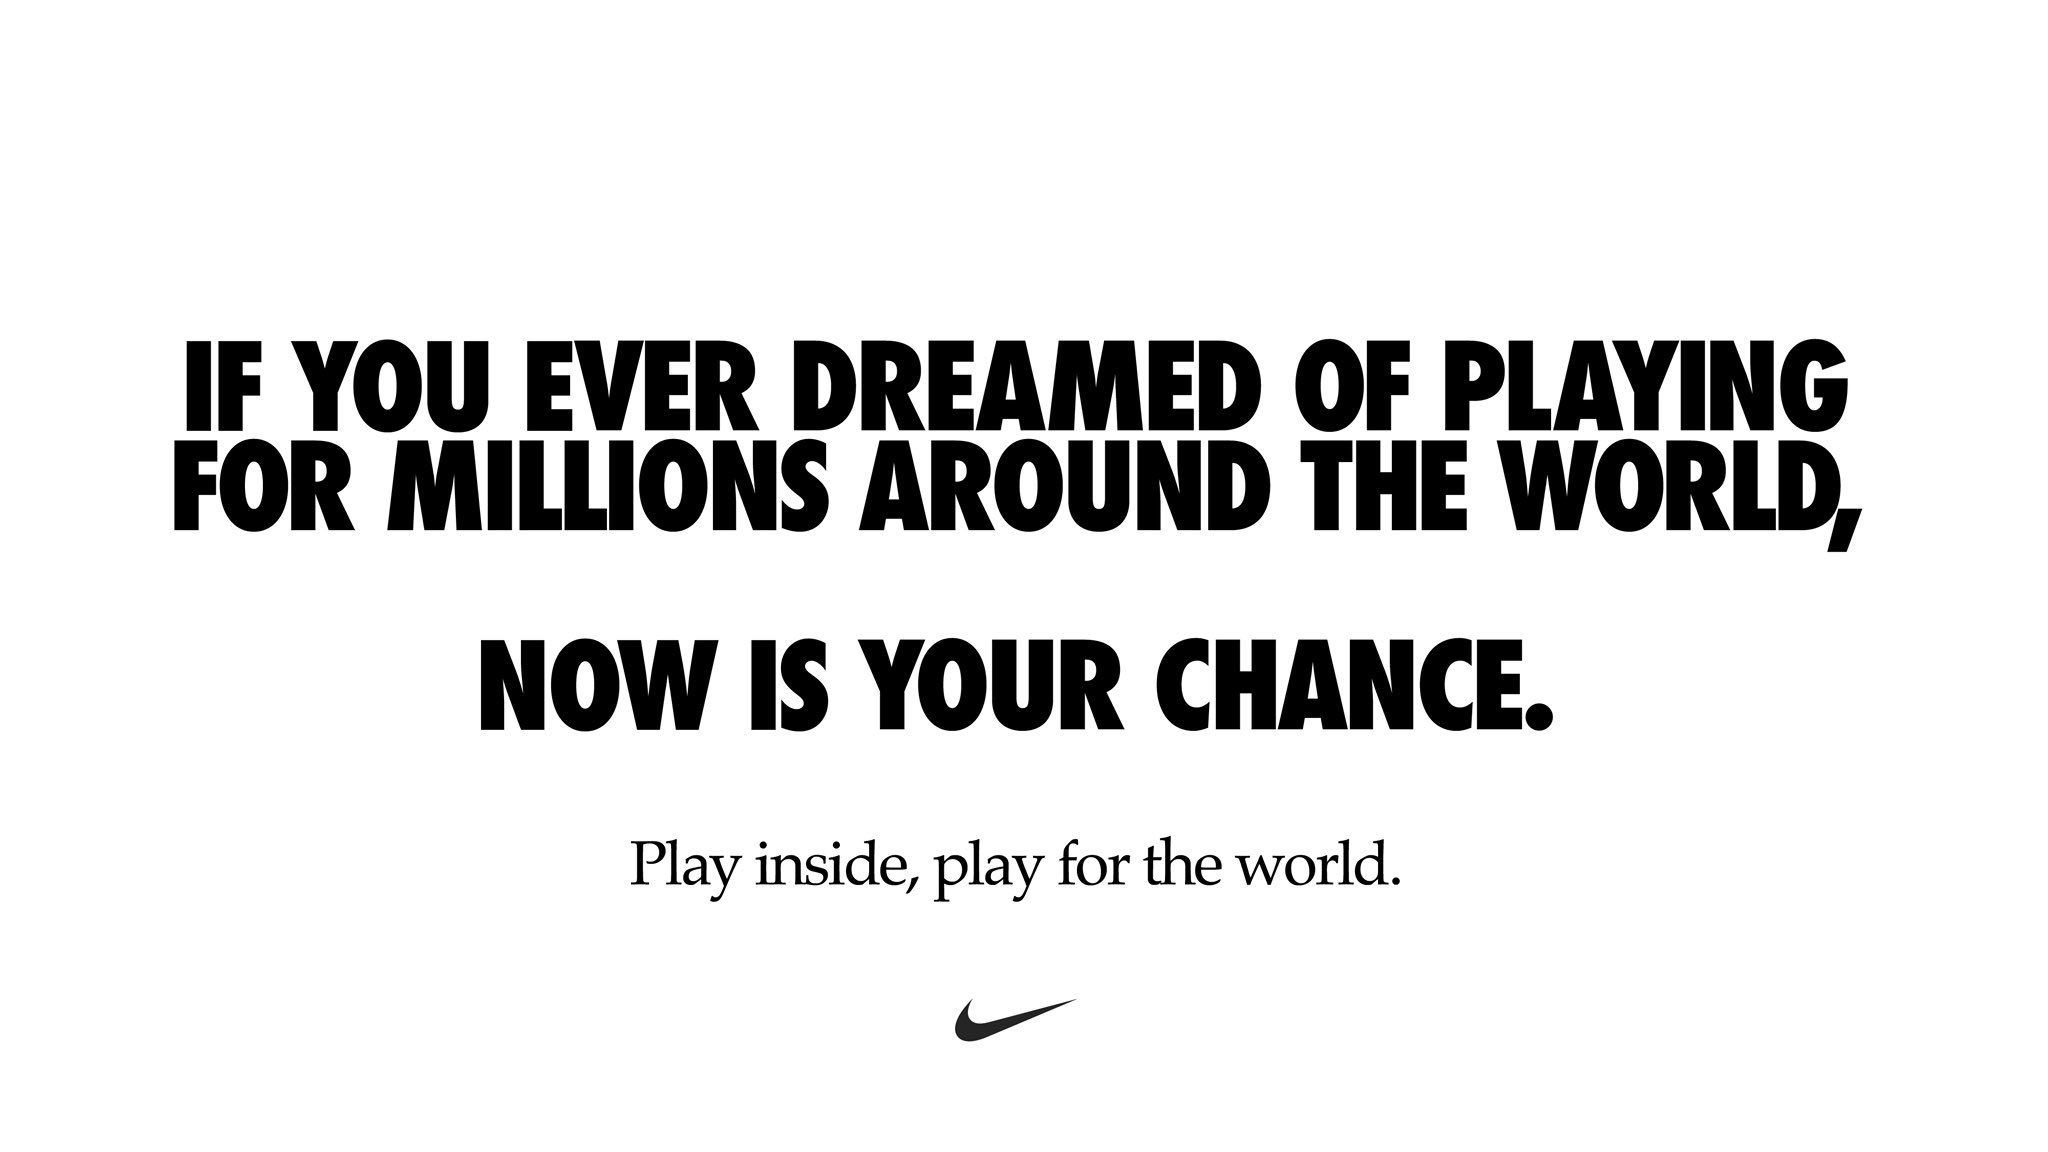 Nike - if you ever dreamed of playing for millions around the world, now is your chance. Play inside, play for the world